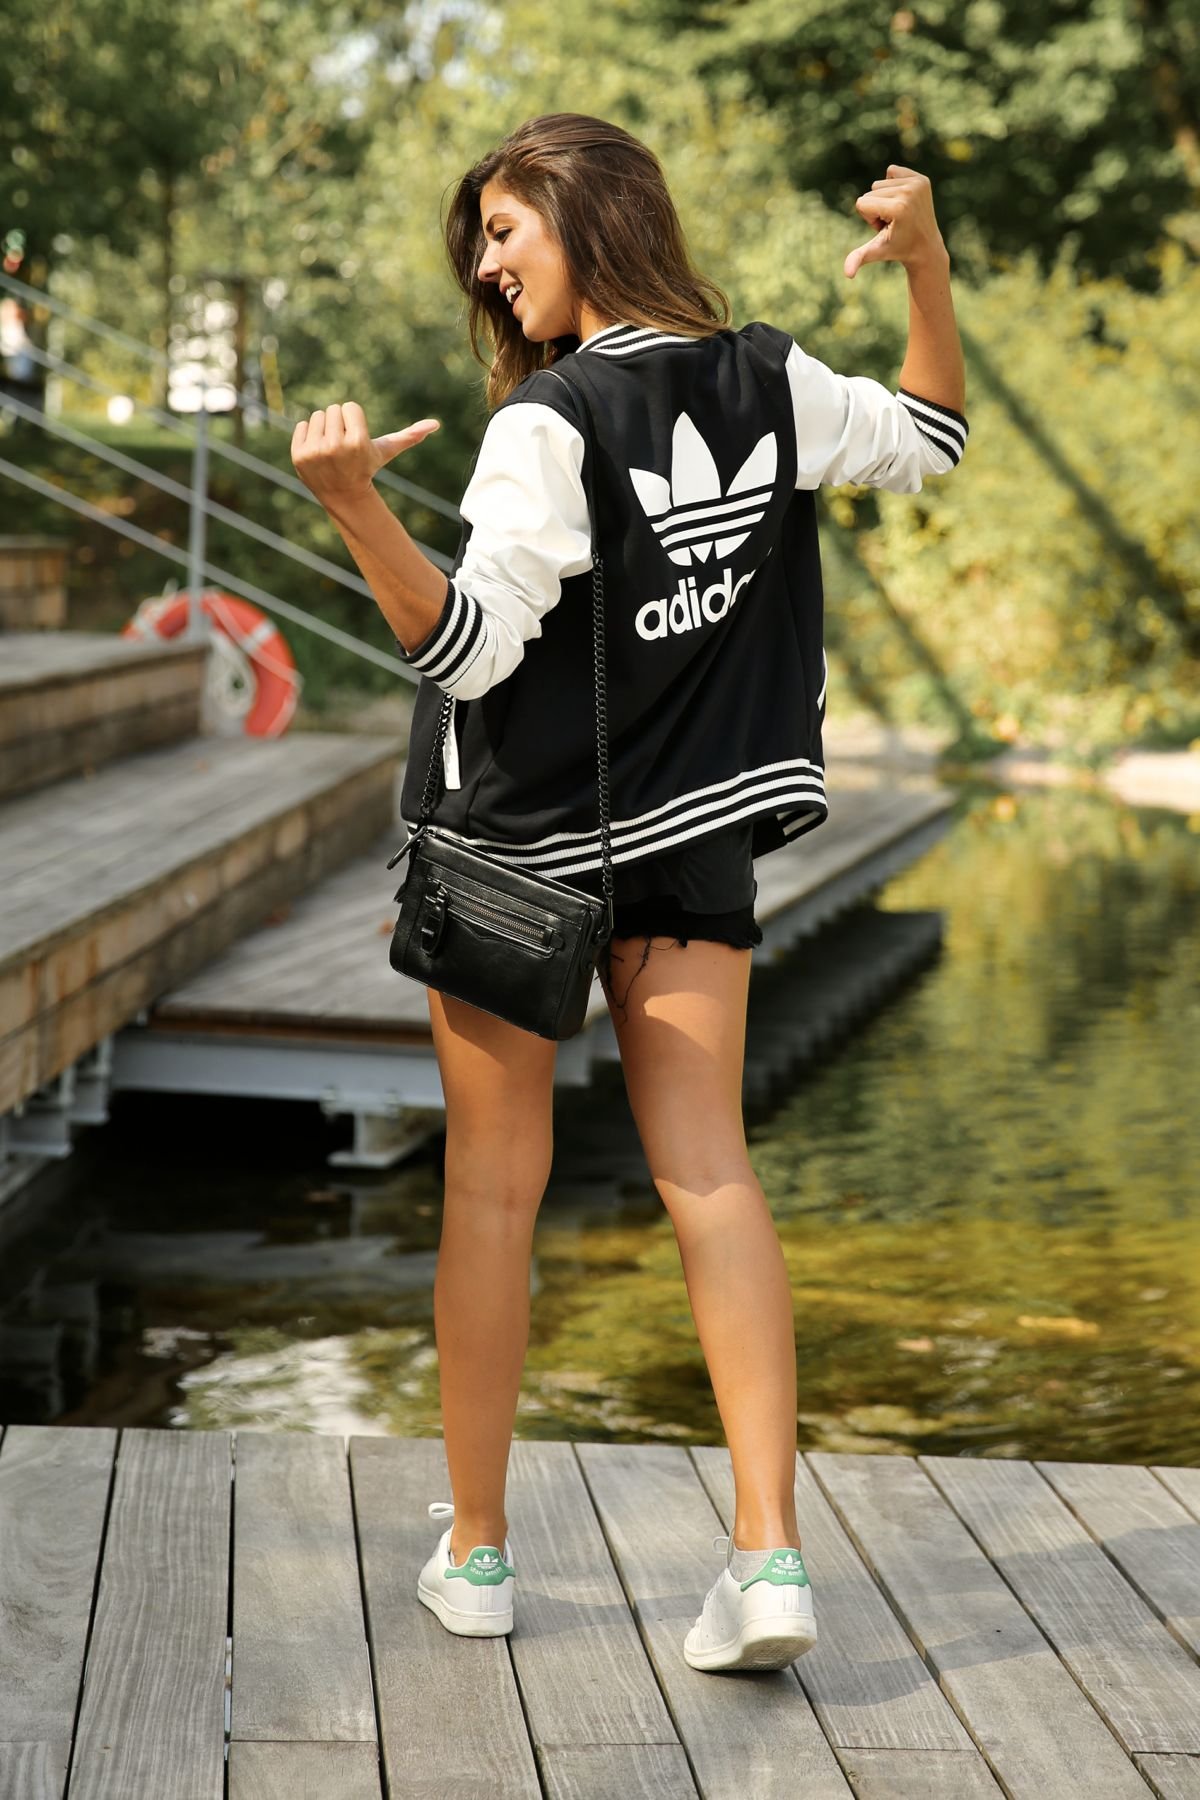 trendy_taste-look-outfit-street_style-ootd-blog-blogger-fashion_spain-moda_españa-stan_smith-adidas-herzo-sport_chic-baseball-chaqueta-shorts-9